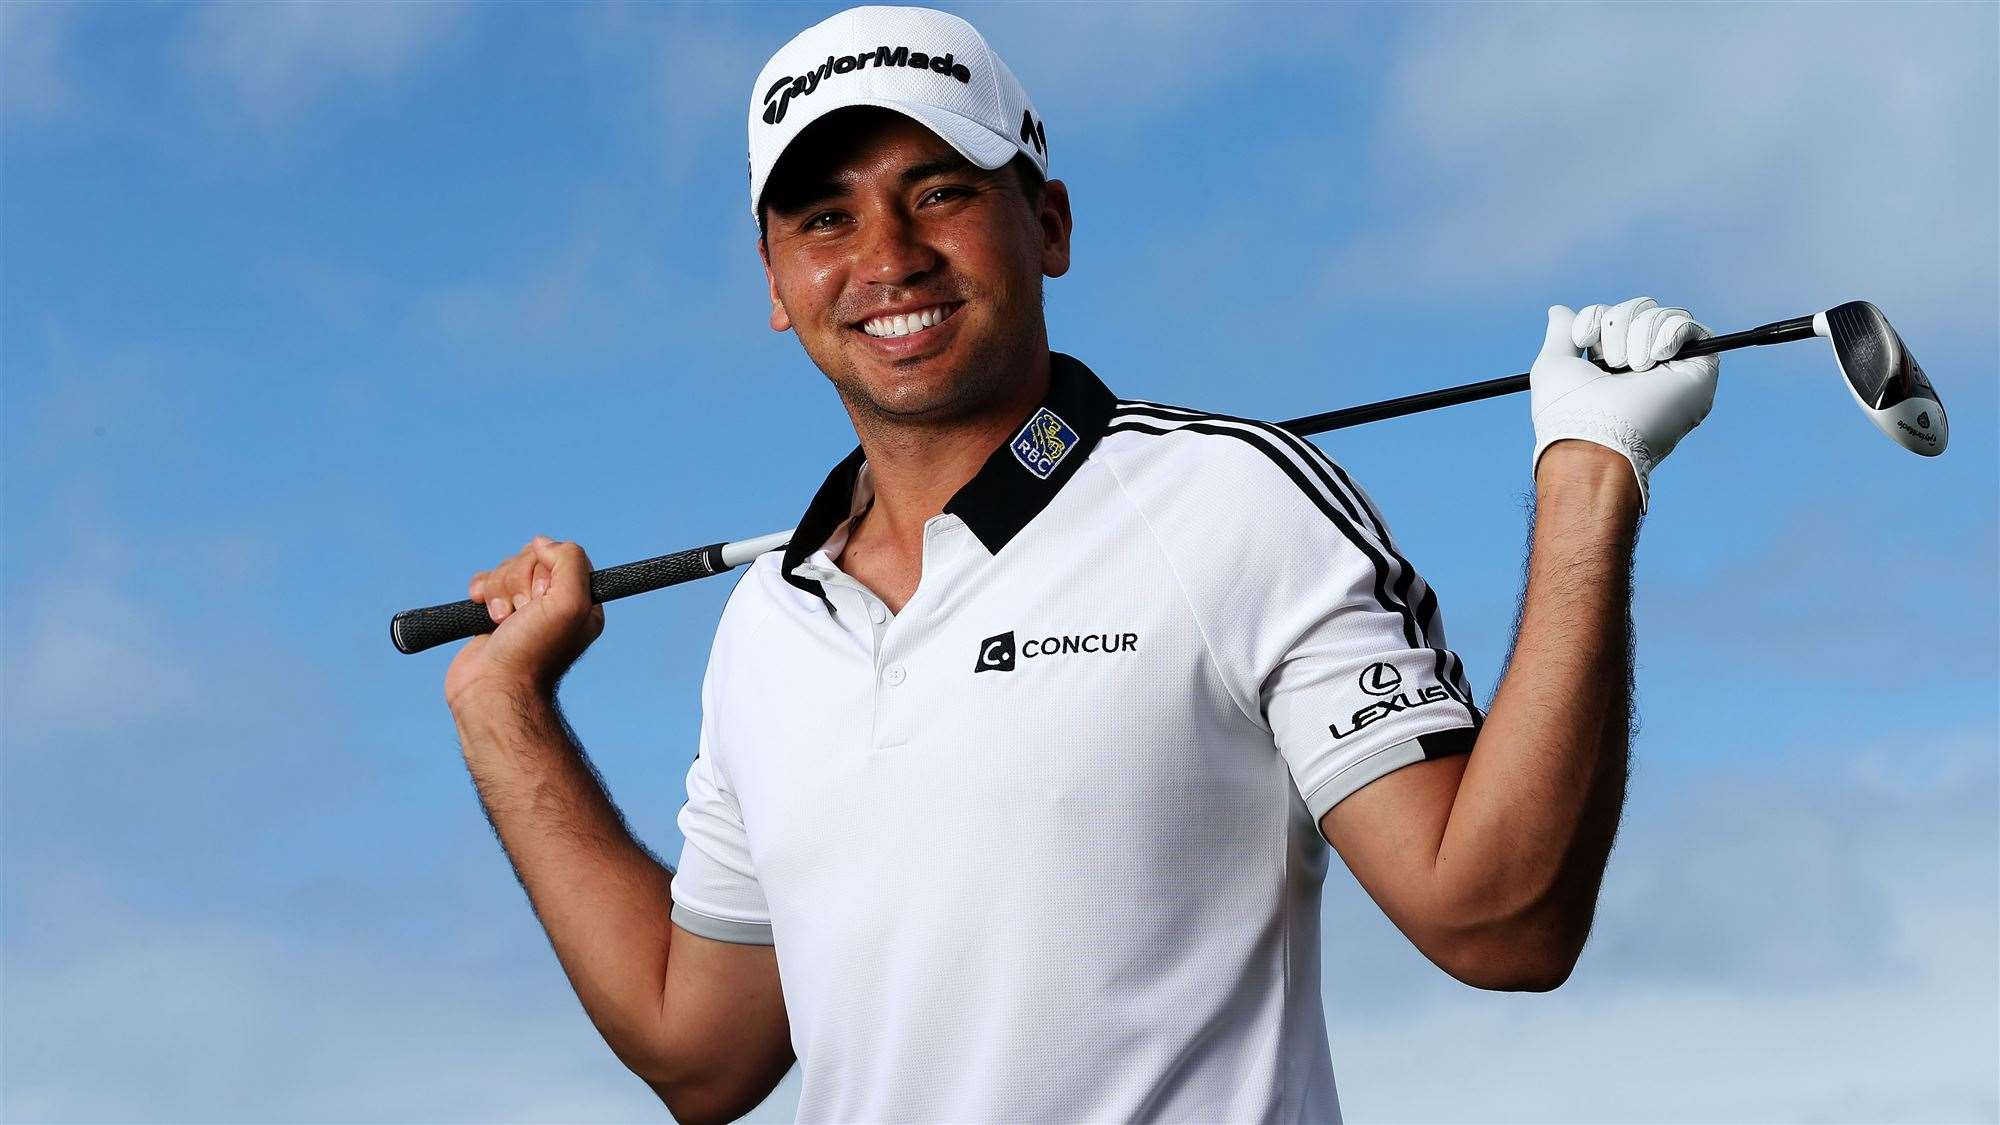 Australian Jason Day Signs With Nike In 100M Deal foto